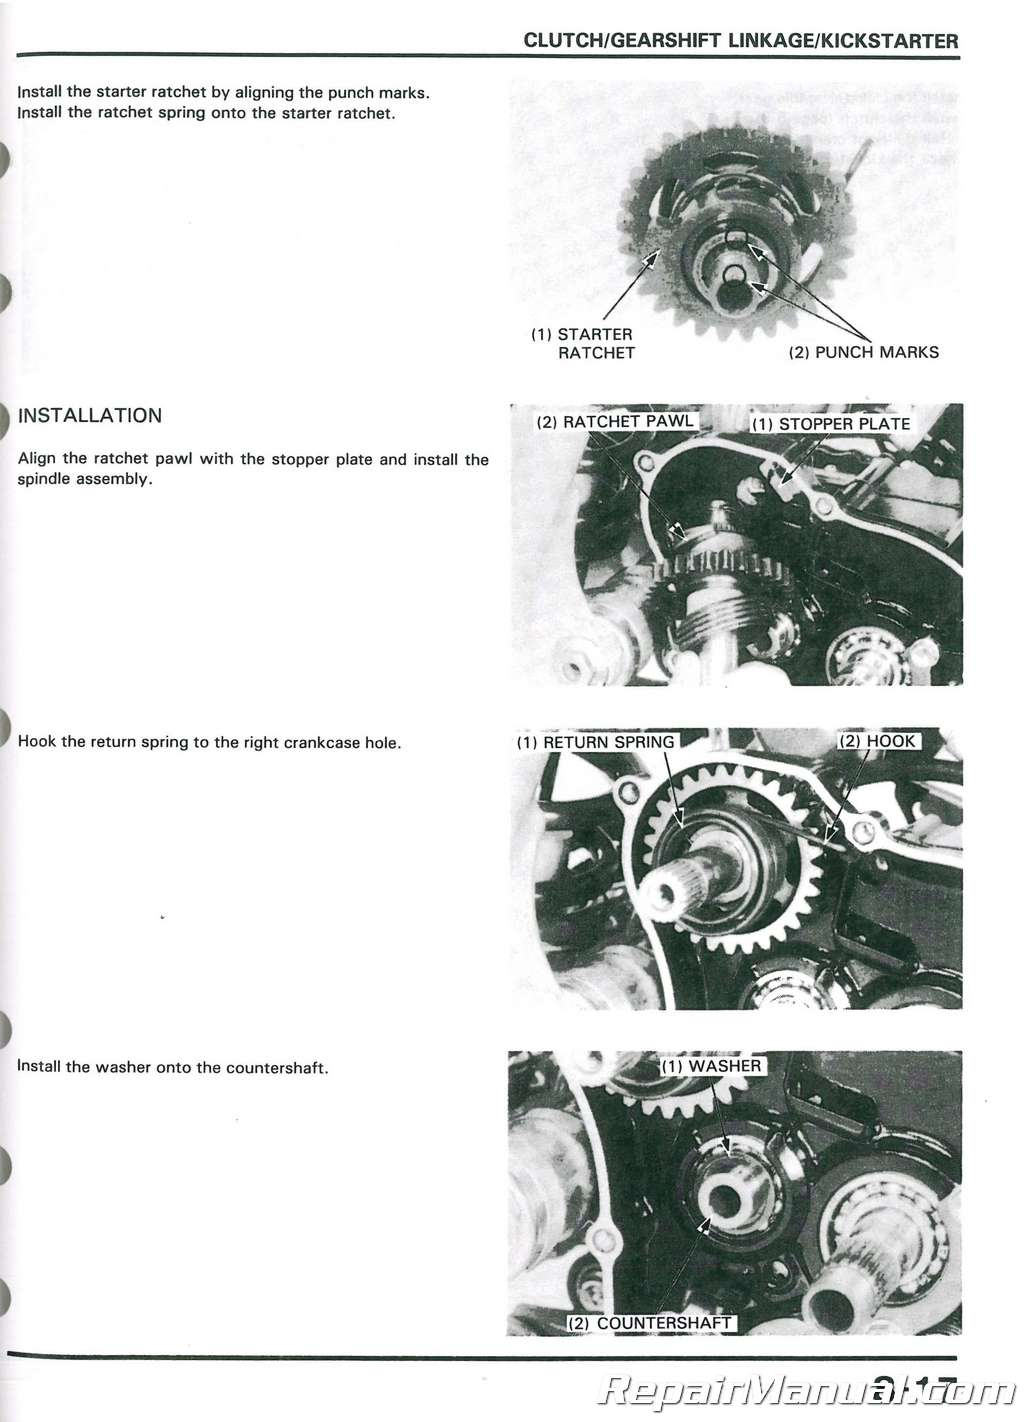 1986 1991 honda cr125r motorcycle service manual rh repairmanual com 1989 honda cr125 owners manual 1987 Honda CR125